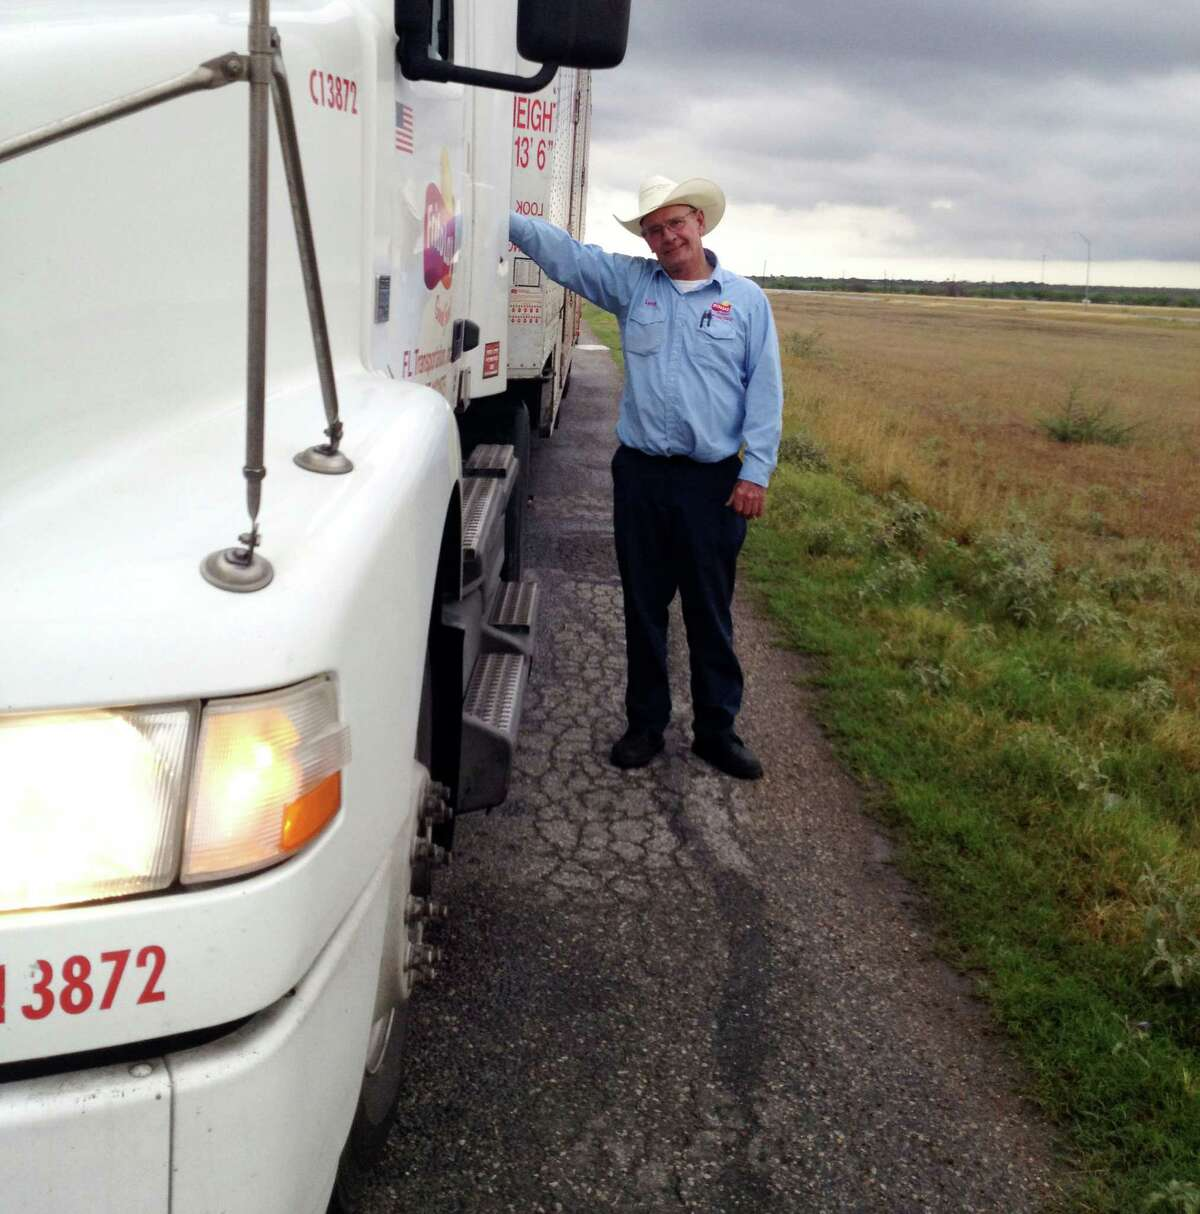 The columnist has written about her father before -- about his 40 years of truck driving before retirement and a trip to the opera. Now Leroy Falkenberg and his family are finding a way to fight his cancer.